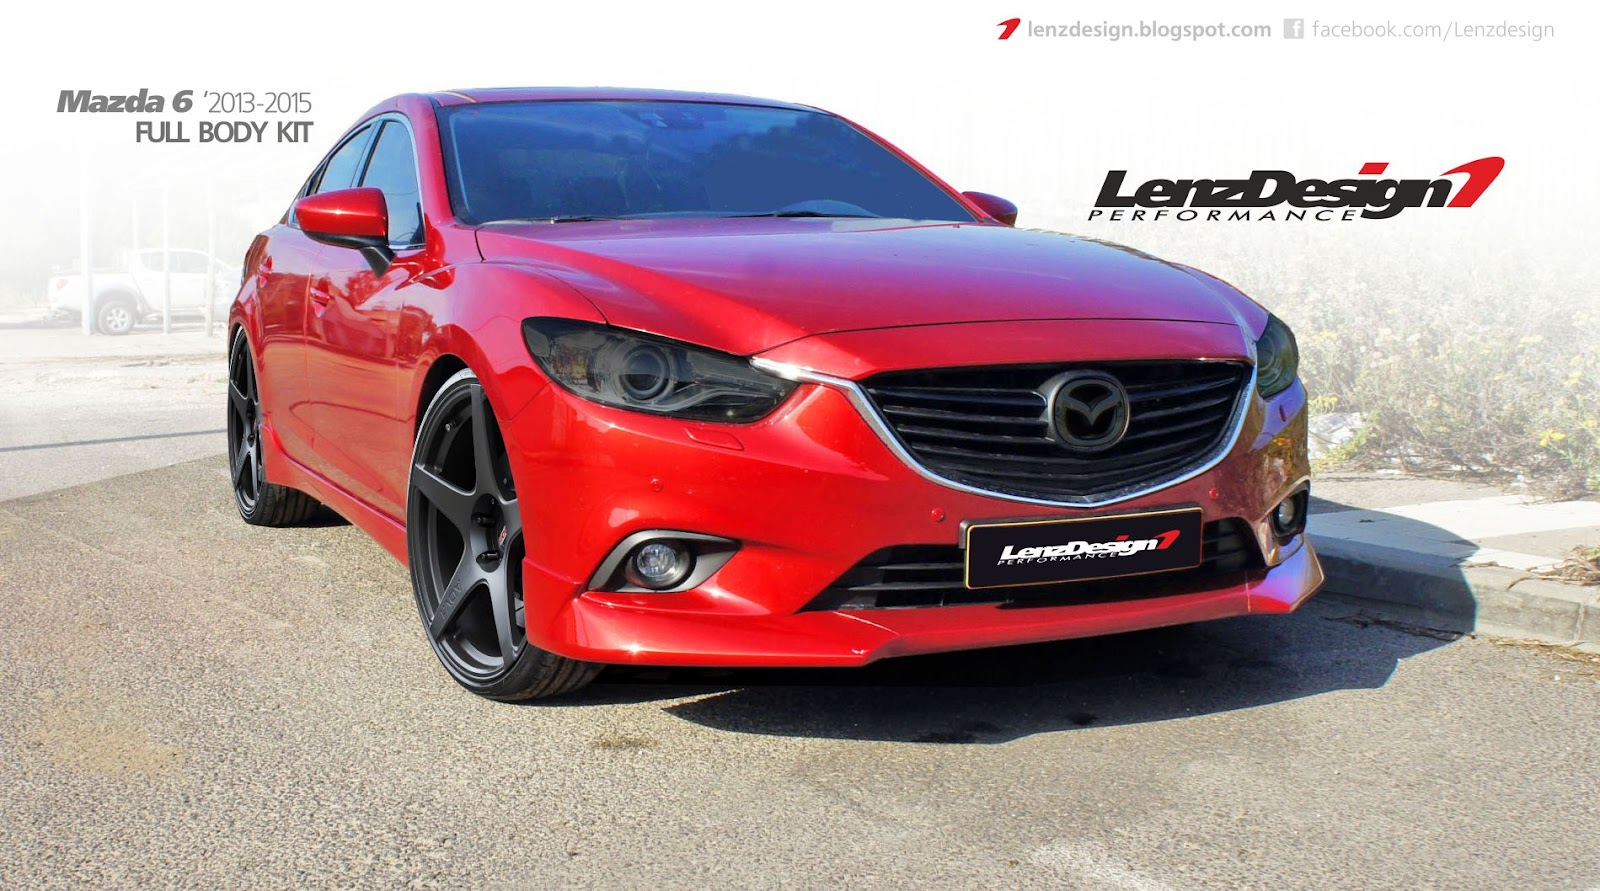 lenzdesign performance israel car tuning custom works mazda 6 2013 2016. Black Bedroom Furniture Sets. Home Design Ideas